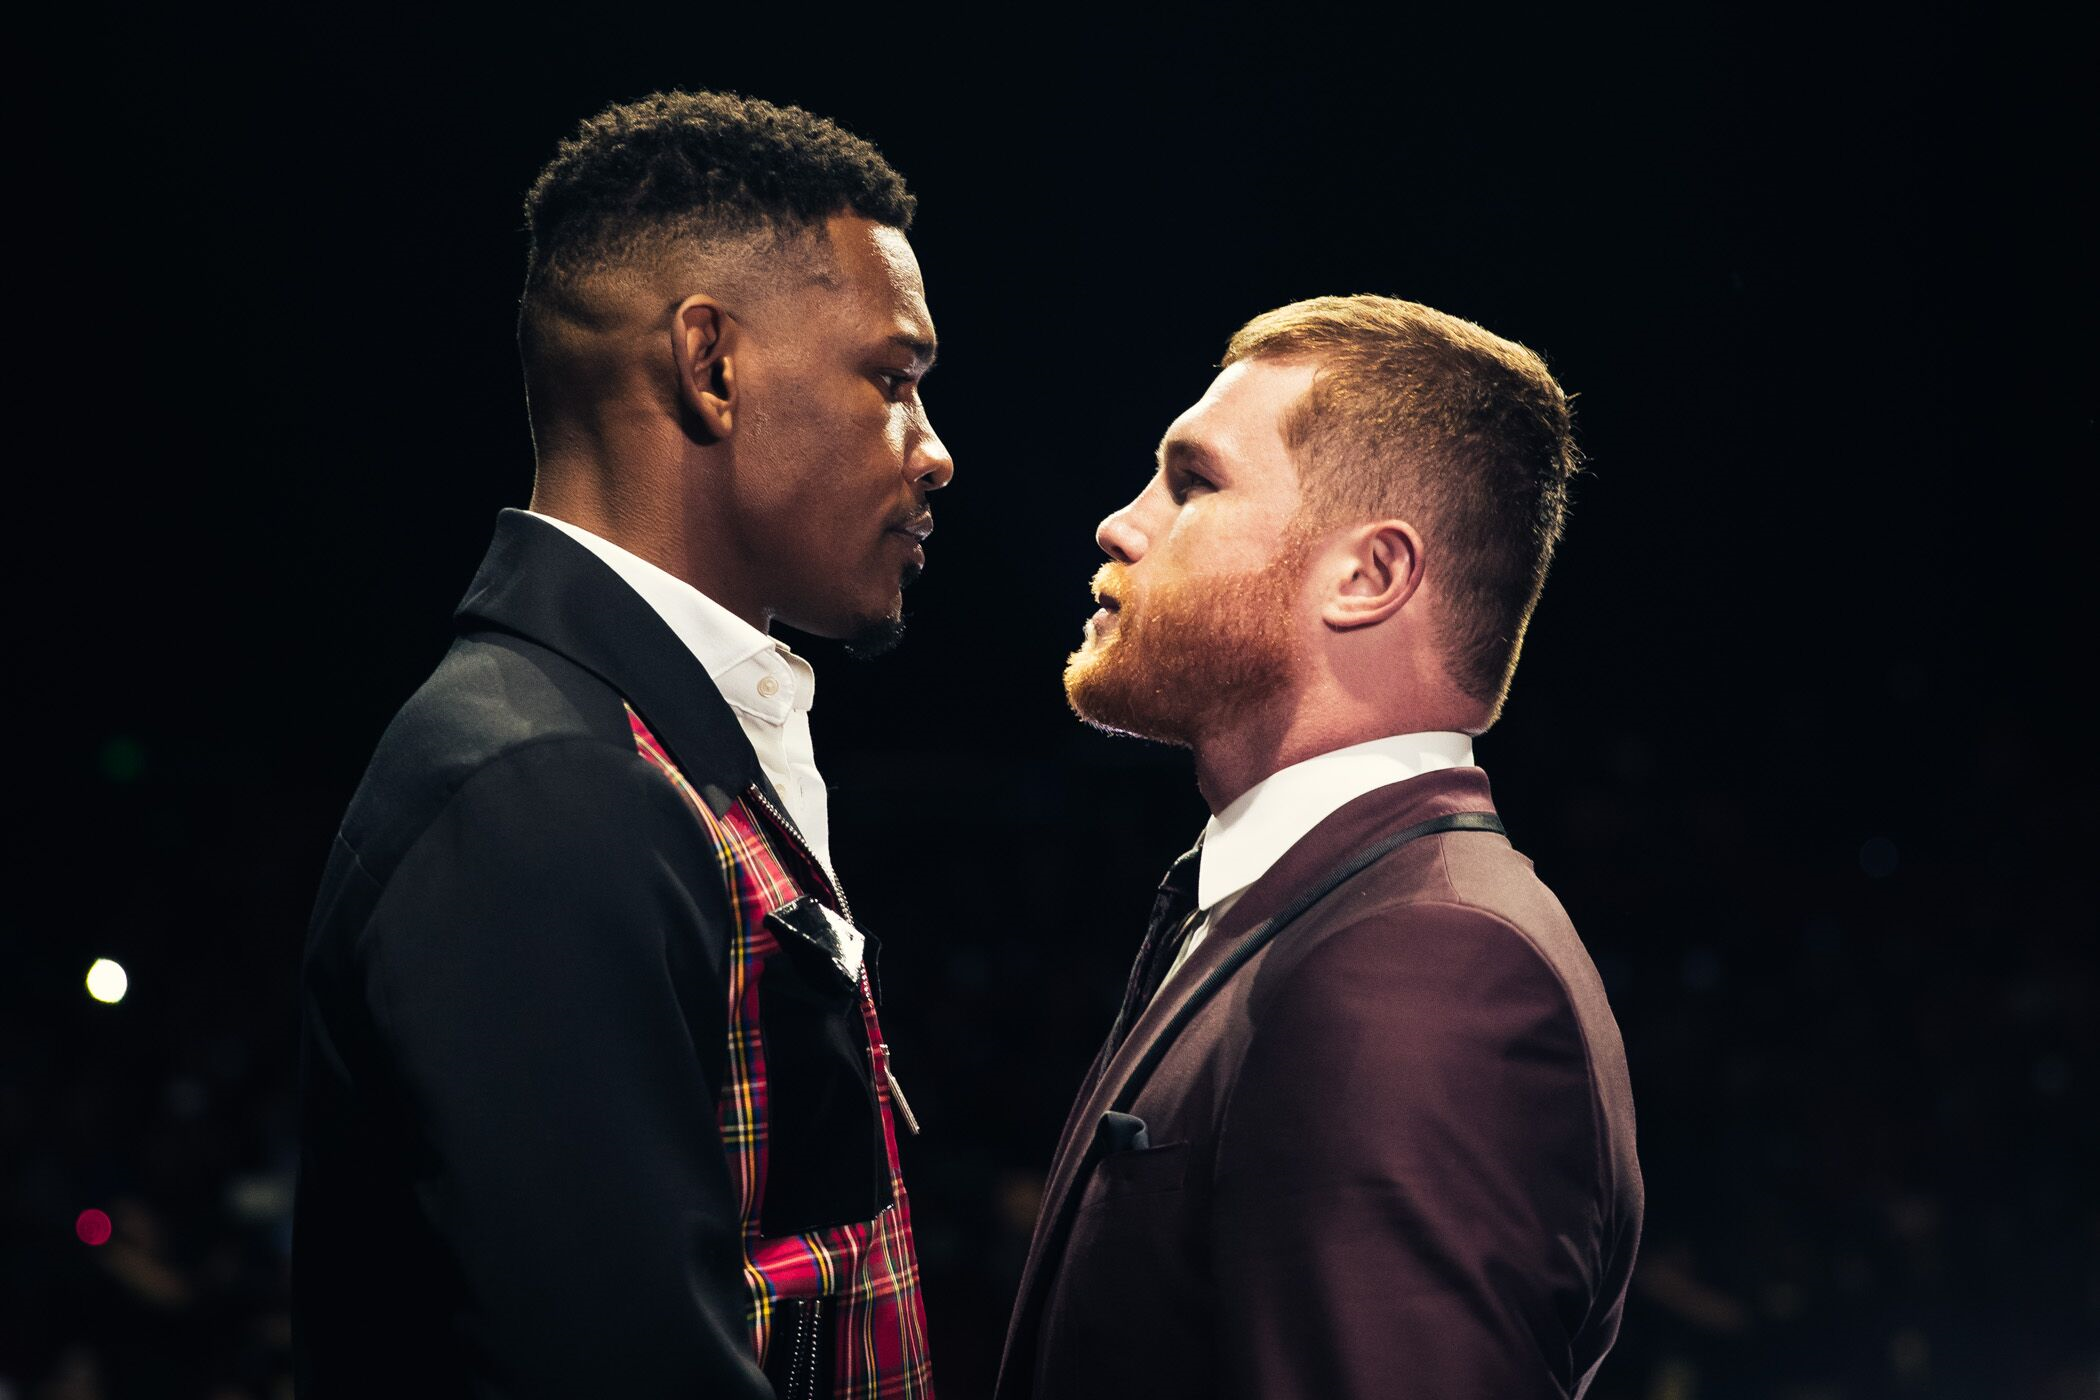 untitled - Canelo Alvarez and Daniel 'Miracle Man' Los Angeles Press Conference Quotes